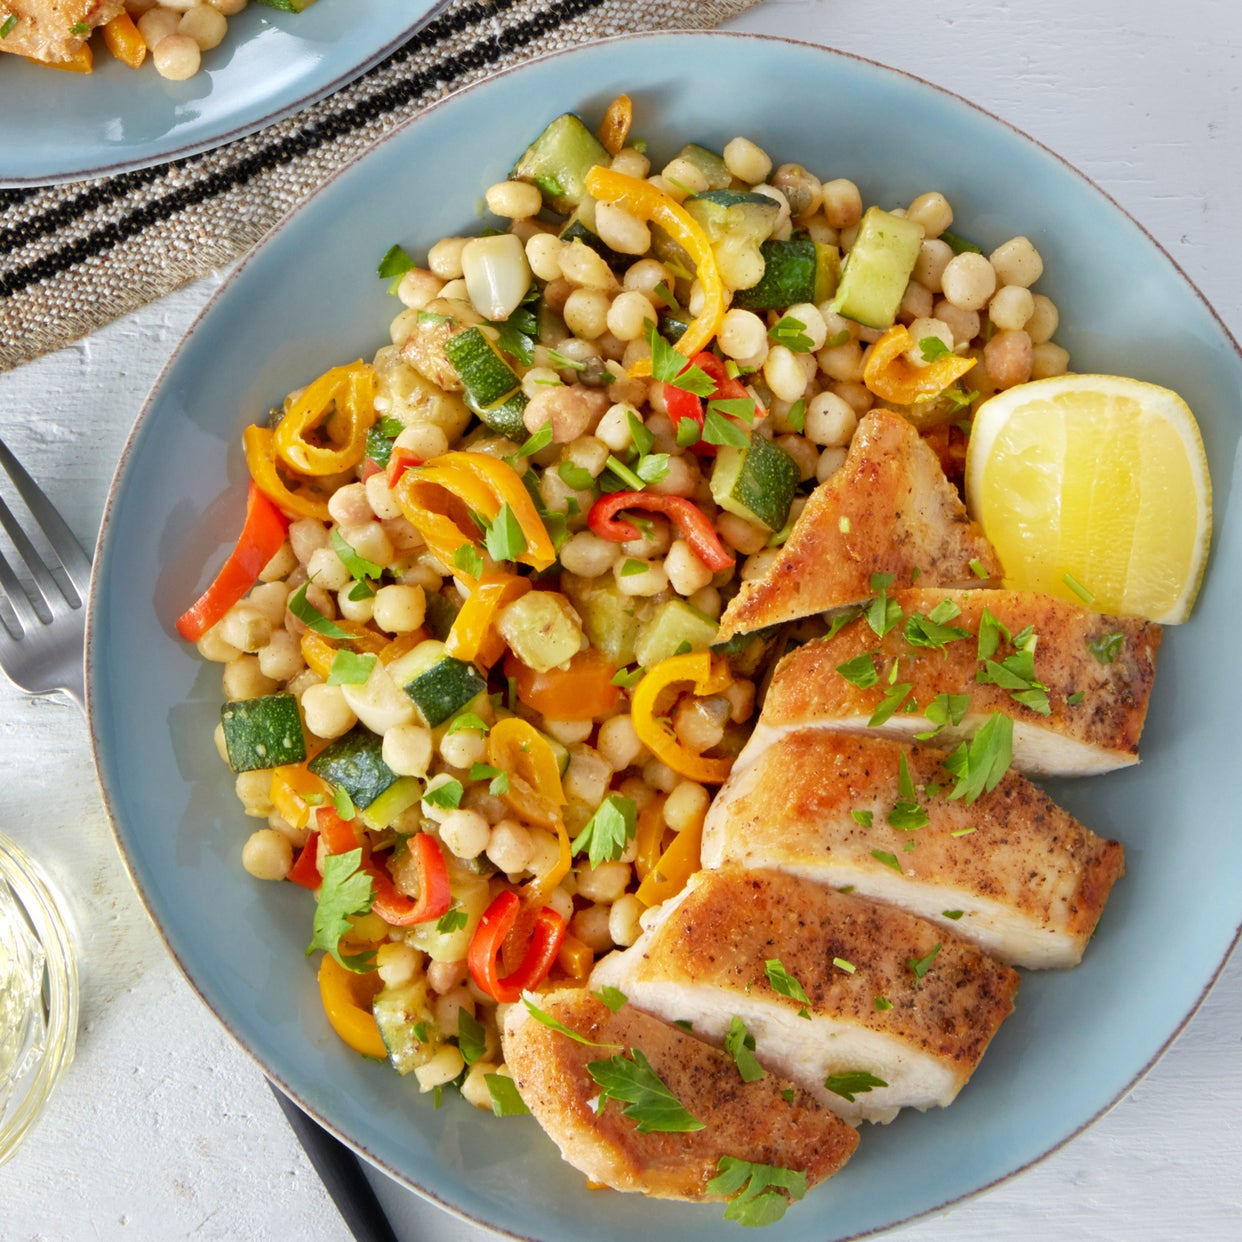 Seared Chicken & Pasta Salad with Lemon-Caper Sauce